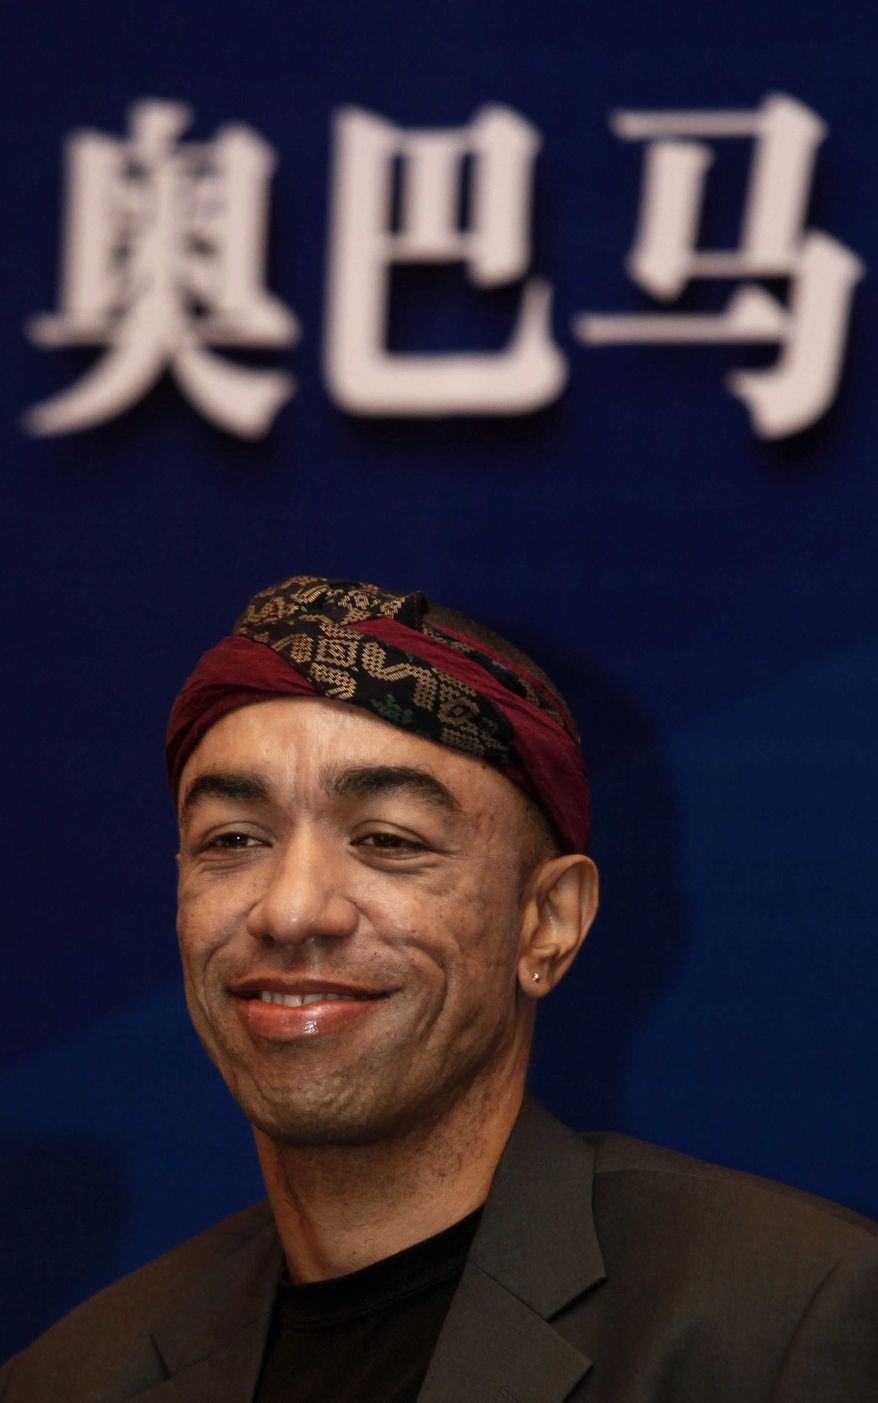 """Mark Ndesandjo, one of President Barack Obama's half-siblings, attends a news conference for his new book """"Nairobi to Shenzhen"""" with the background written """"Obama"""" in Chinese characters, in Guangzhou, southern city of China Wednesday, Nov. 4, 2009. (AP Photo/Kin Cheung)"""